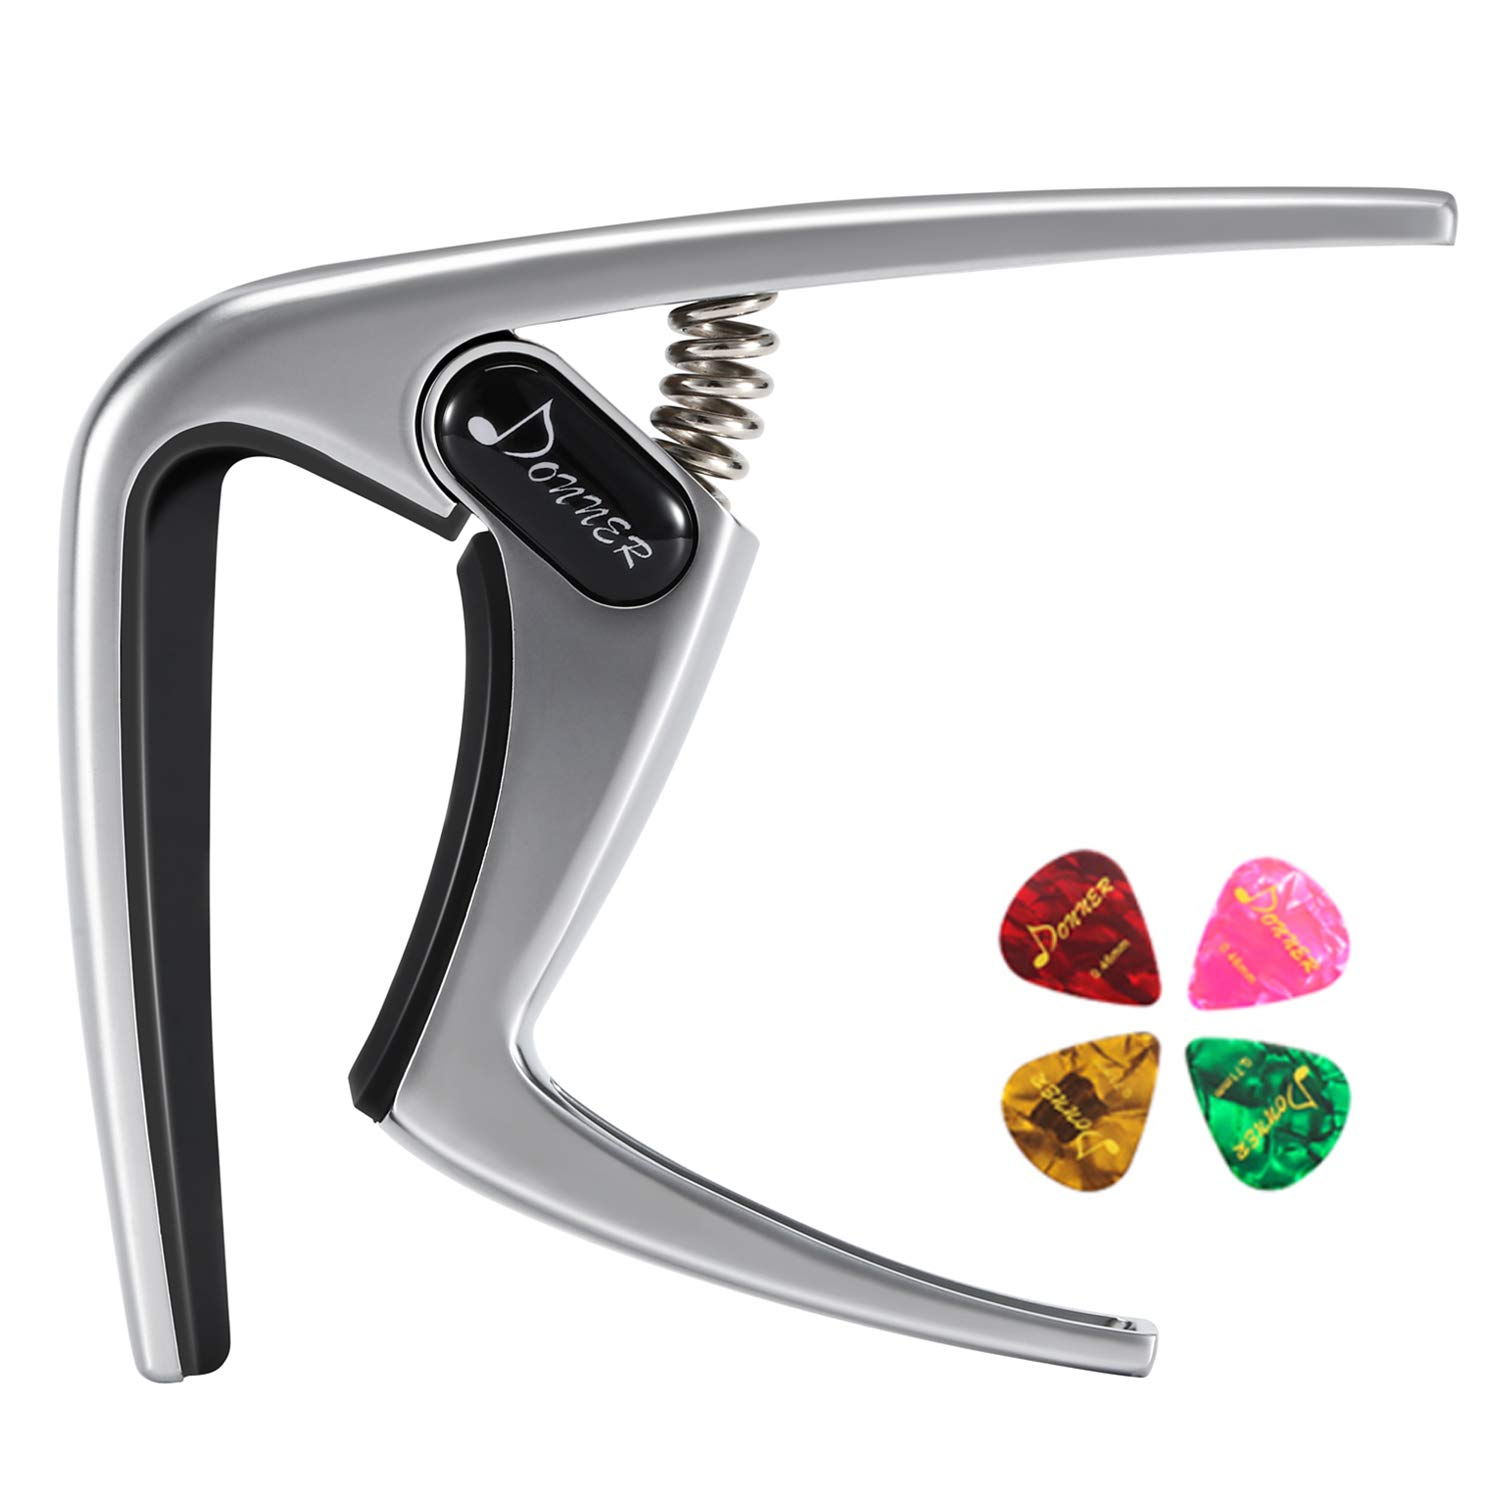 Donner DC-2 Quick Change Black Guitar Capo Easy Use for Electric and Acoustic Guitars, Ukulele Banjo, Folk Guitars and Mandolin